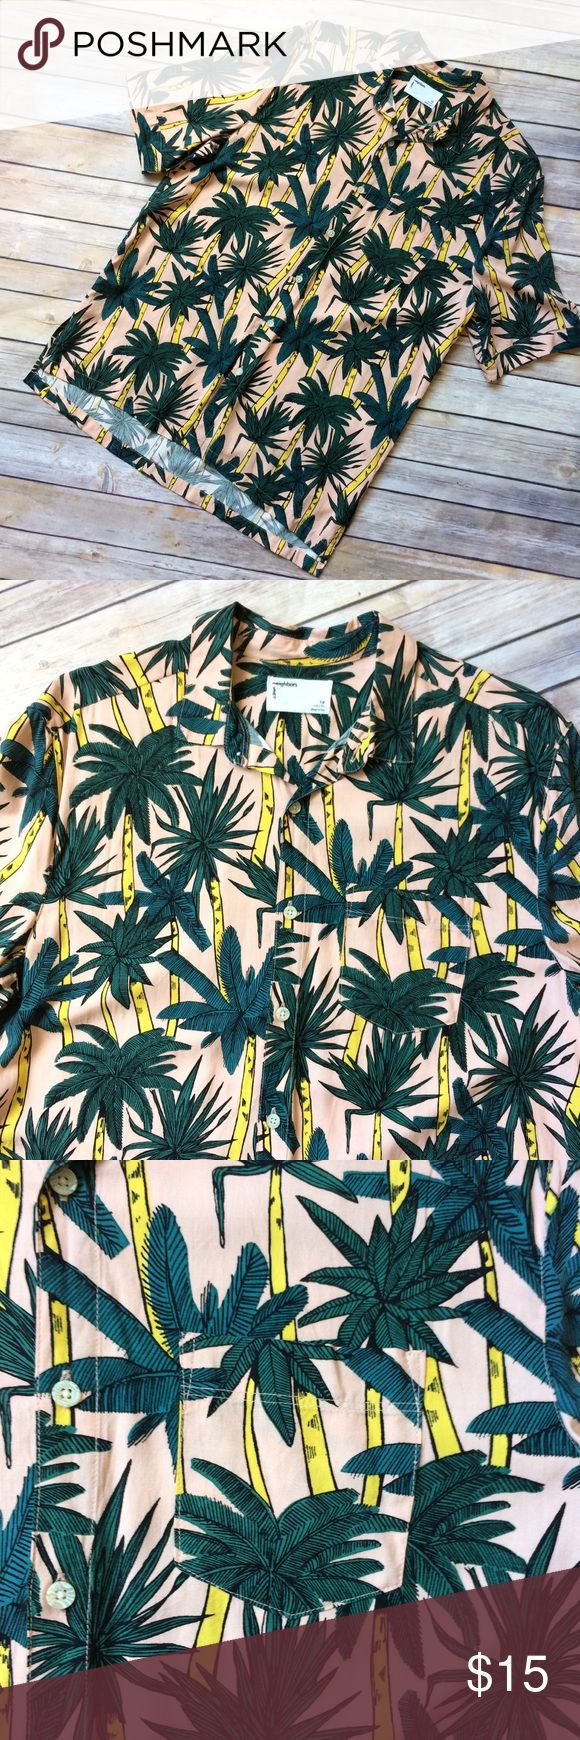 Urban Outfitters Hawaiian Shirt Palm Trees Men's palm tree print Hawaiian shirt. Made of 💯 rayon like the original Hawaiian shirts. From Urban Outfitters- Your Neighbors brand. New without tags Urban Outfitters Shirts Casual Button Down Shirts